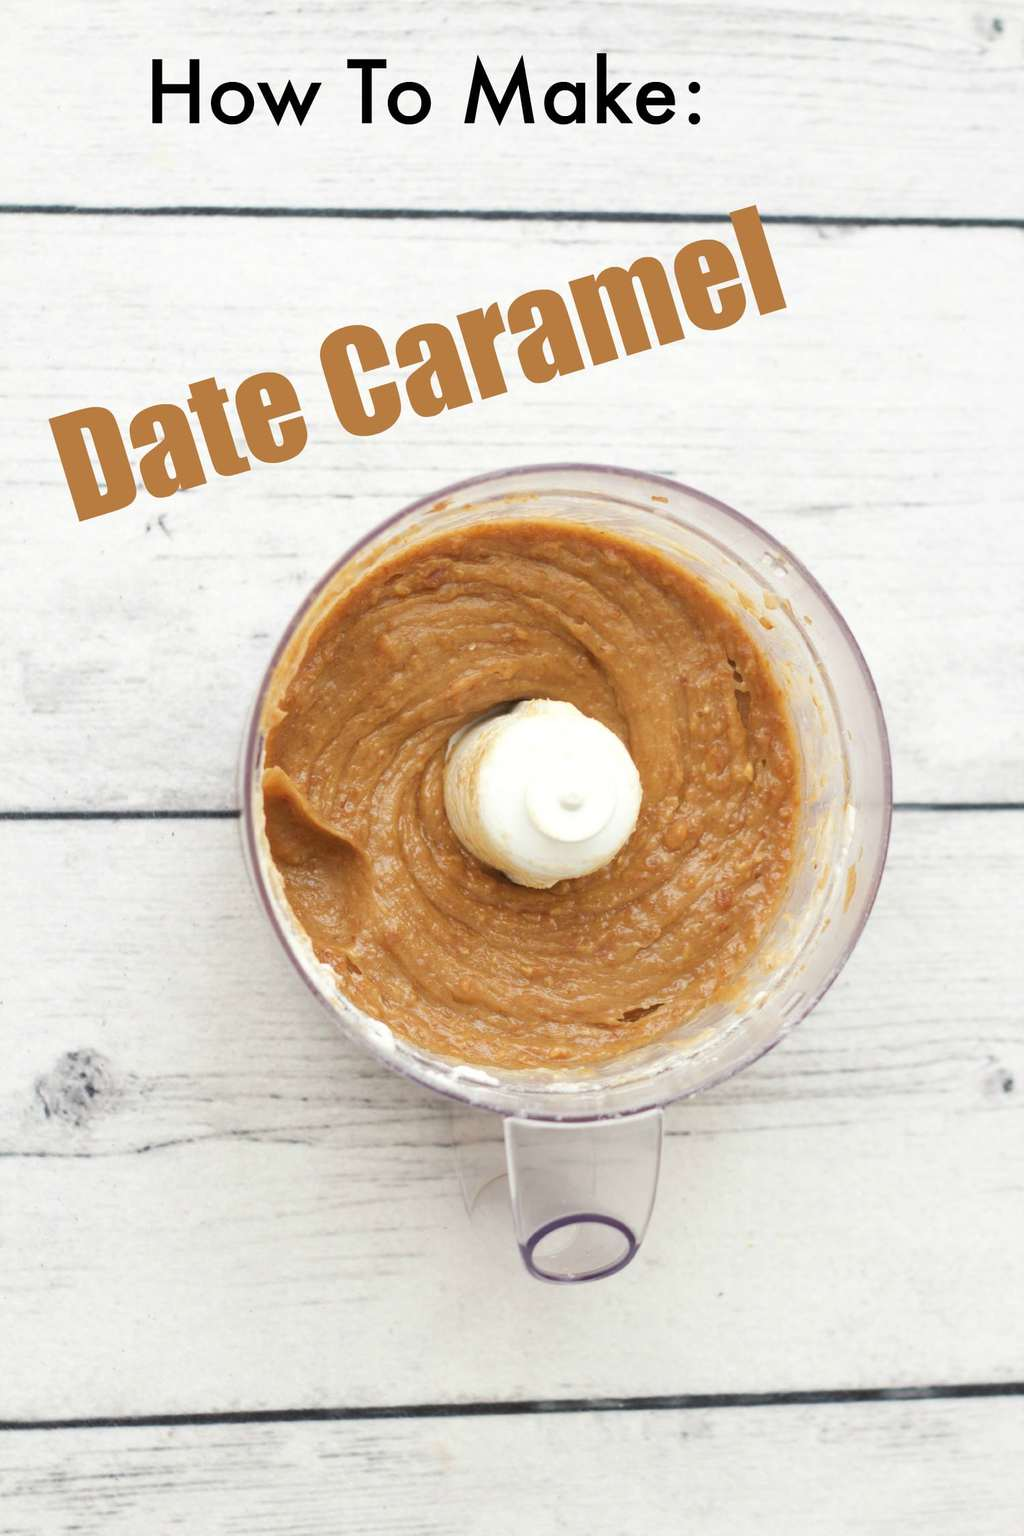 Easy 2-ingredient date caramel, ideal as a pie filling, ice cream swirl or topping. Rich, creamy and so delicious! #vegan #lovingitvegan #dairy-free #gluten-free